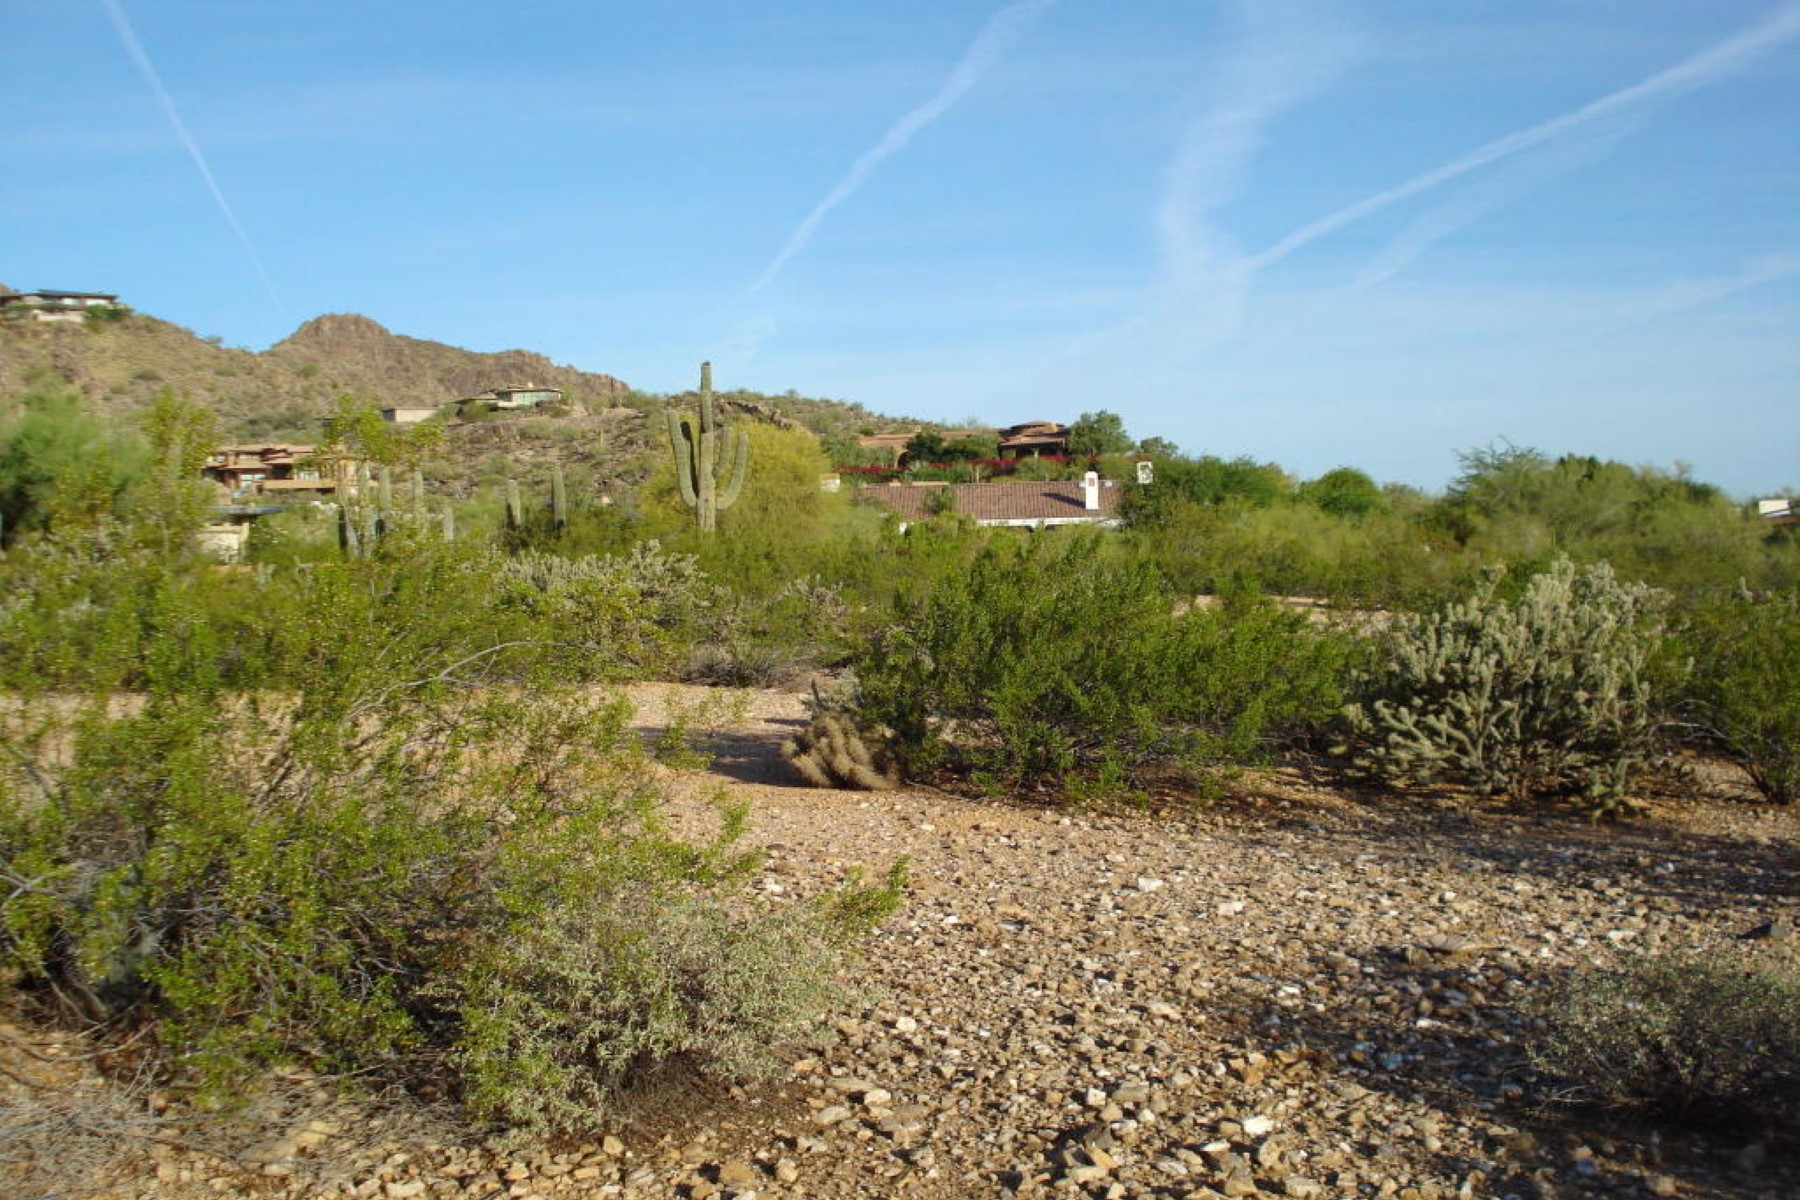 Land for Sale at 2+acre parcels on the North side of Mummy Mountain. 7734 N HUMMINGBIRD LN N 46 Paradise Valley, Arizona 85253 United States